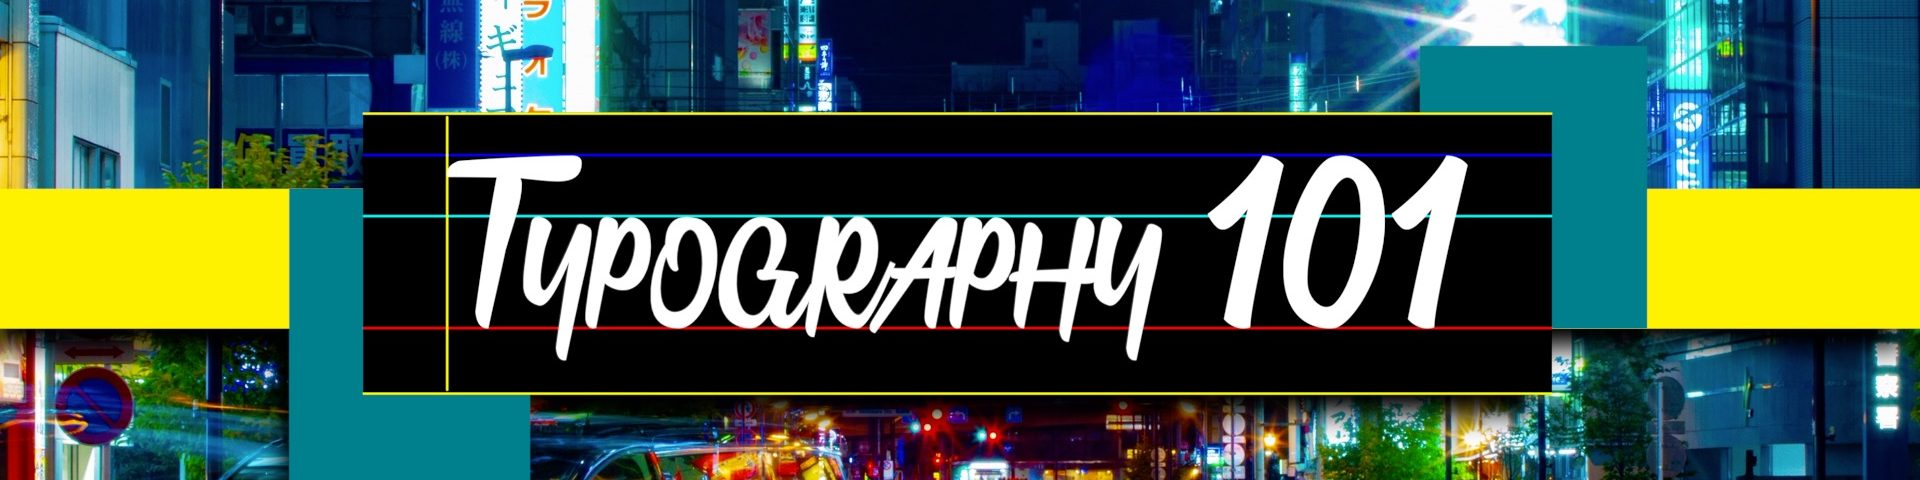 Typography 101 title for FCPX